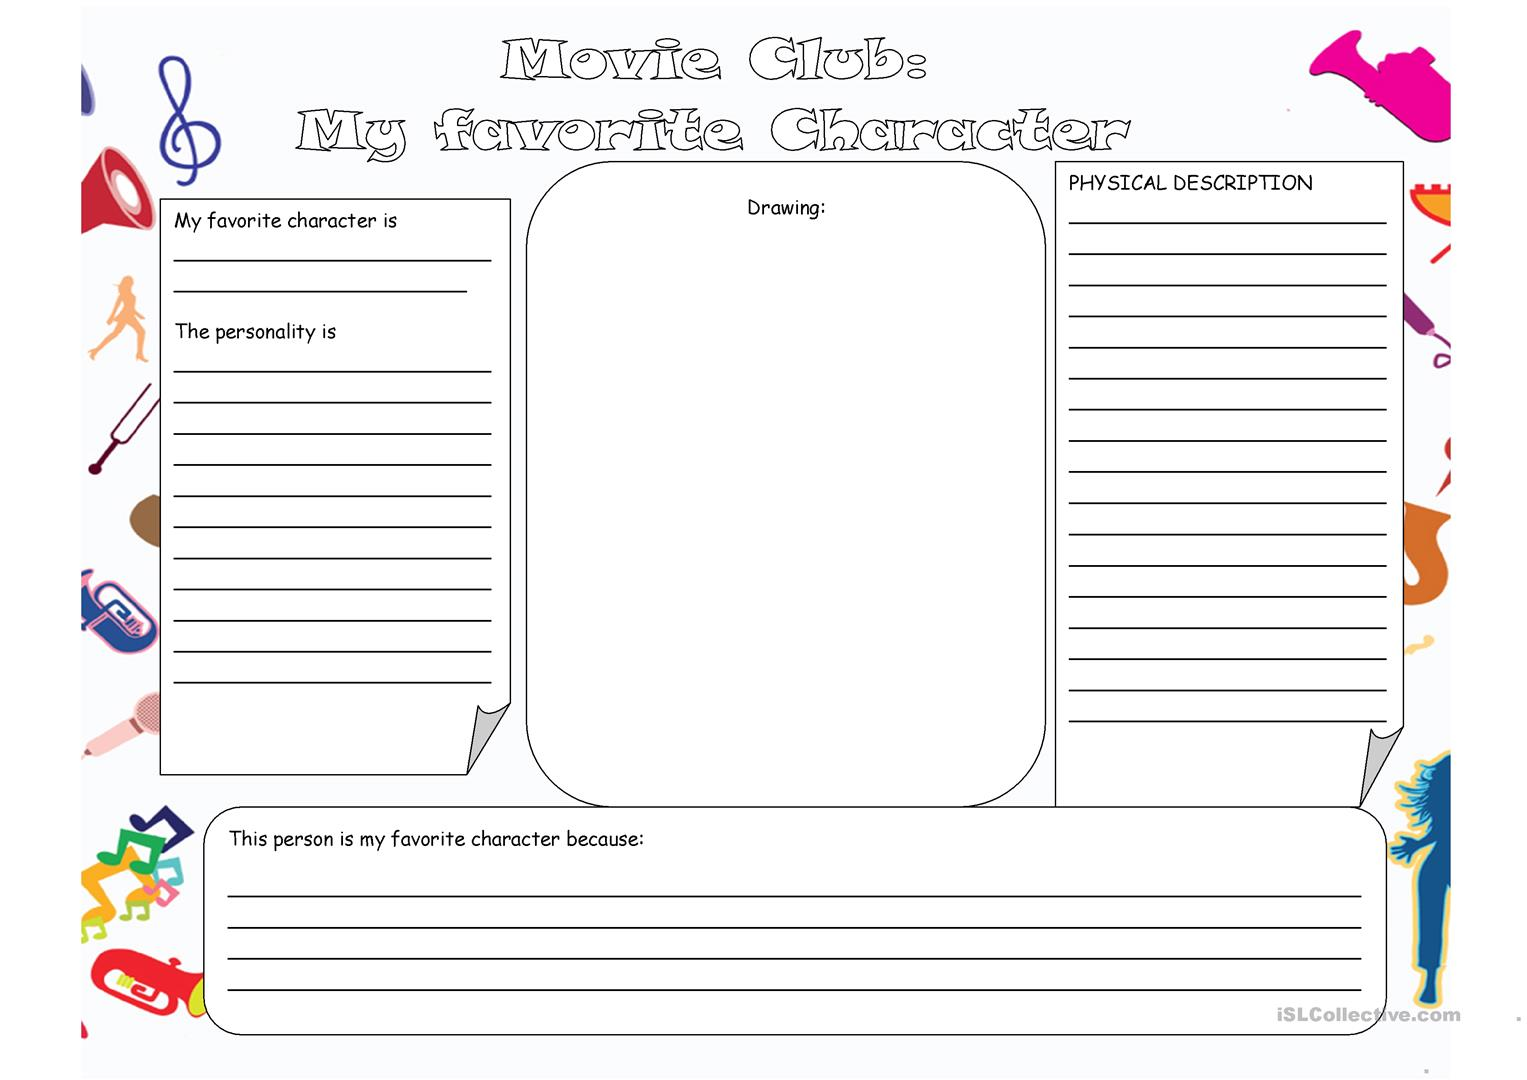 My Favorite Character Worksheet